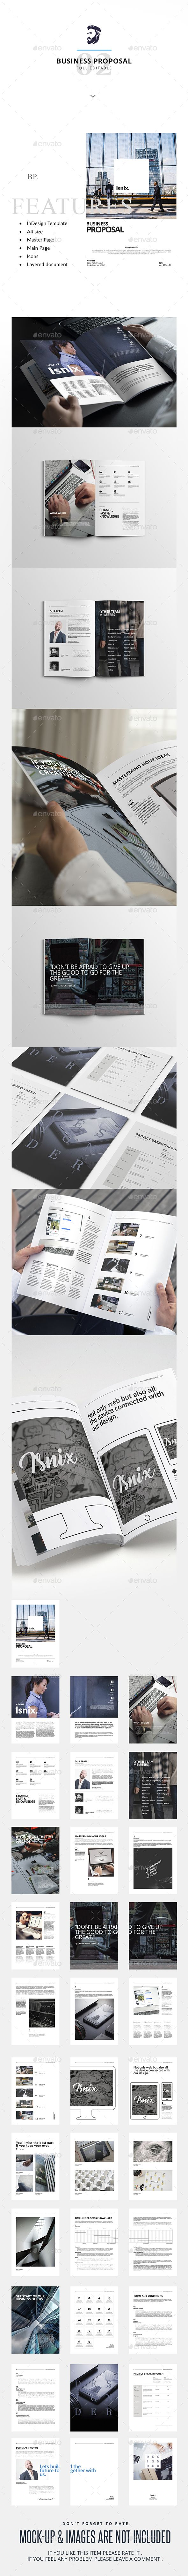 Business Proposal — InDesign INDD #clean proposal clean style #indd buisness proposal • Download ➝ https://graphicriver.net/item/business-proposal/19359813?ref=pxcr